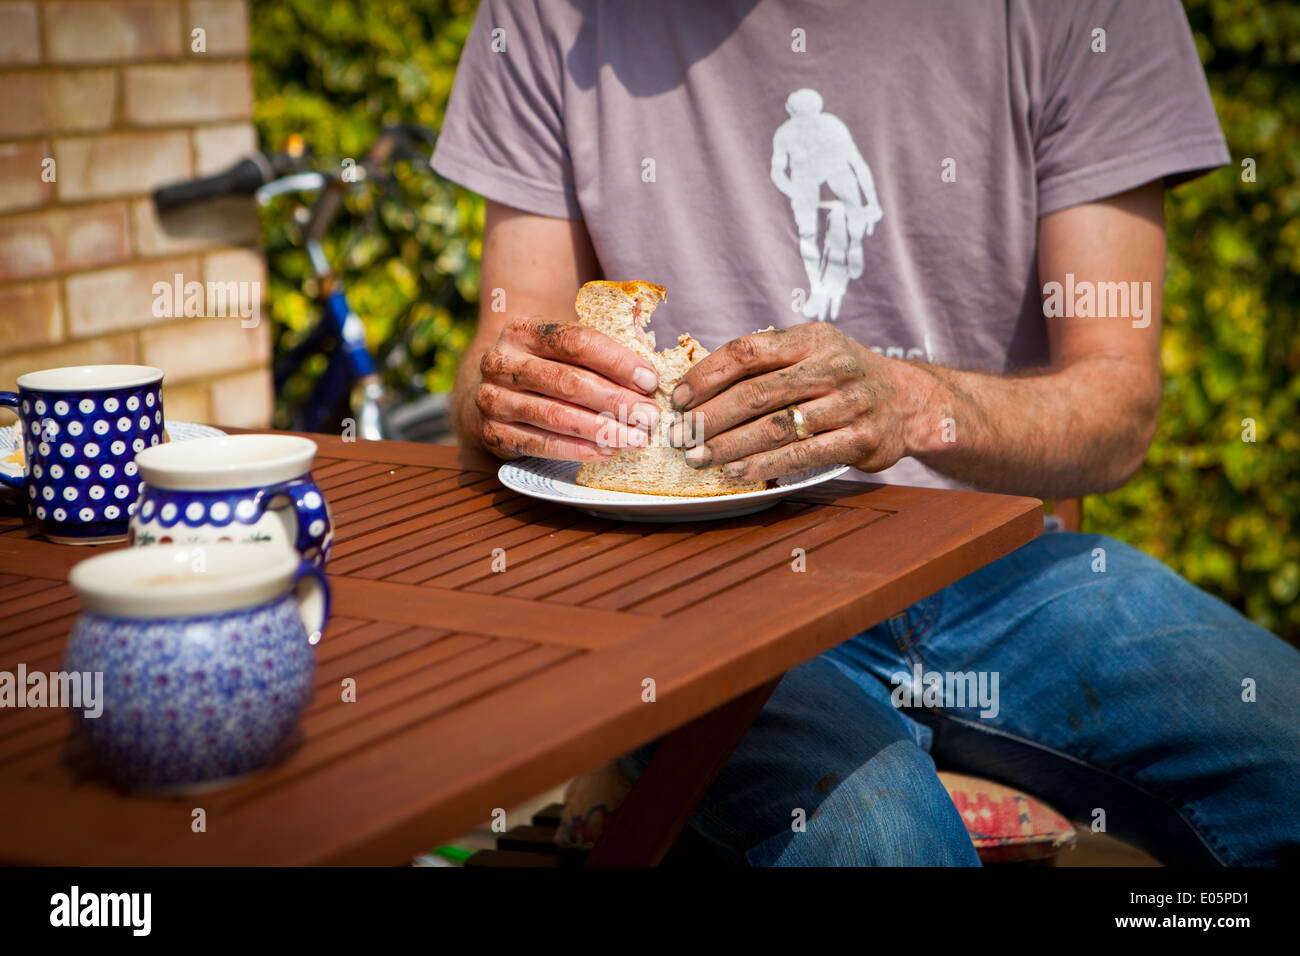 Man eating sandwich with dirty hands - Stock Image